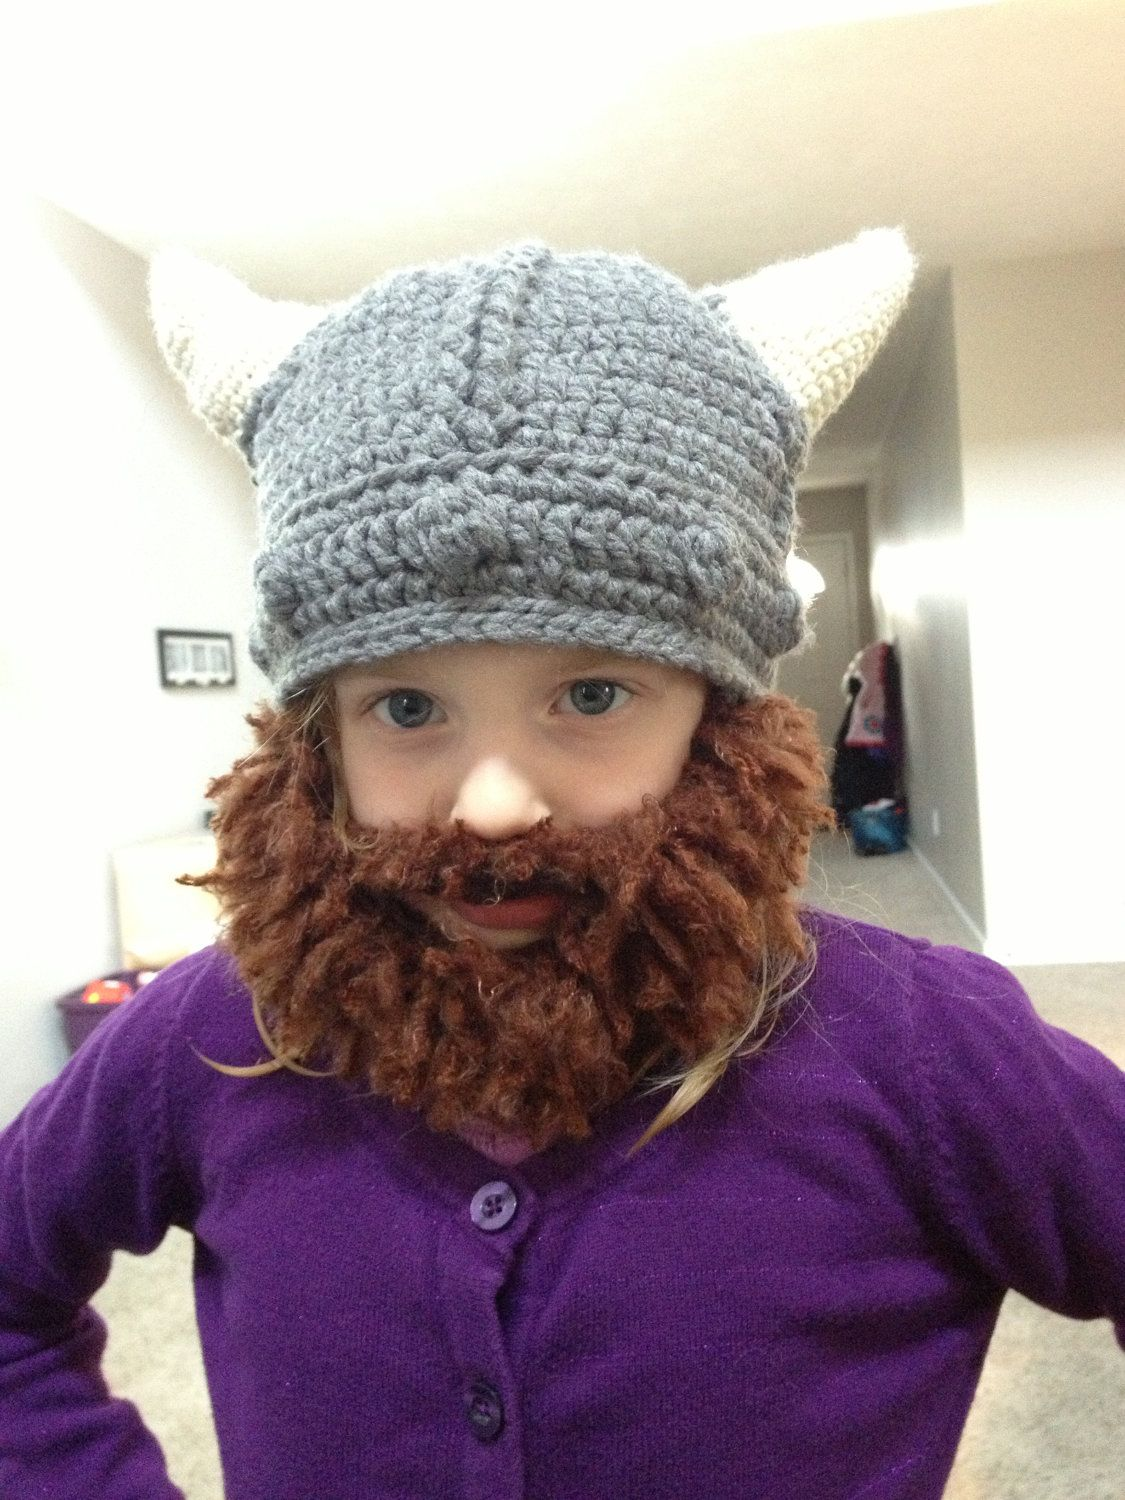 Free Knitting Patterns For Baby Toys : Fuzzy Beard Crochet Viking hat. Crochet hats Pinterest Vikings, Crochet...